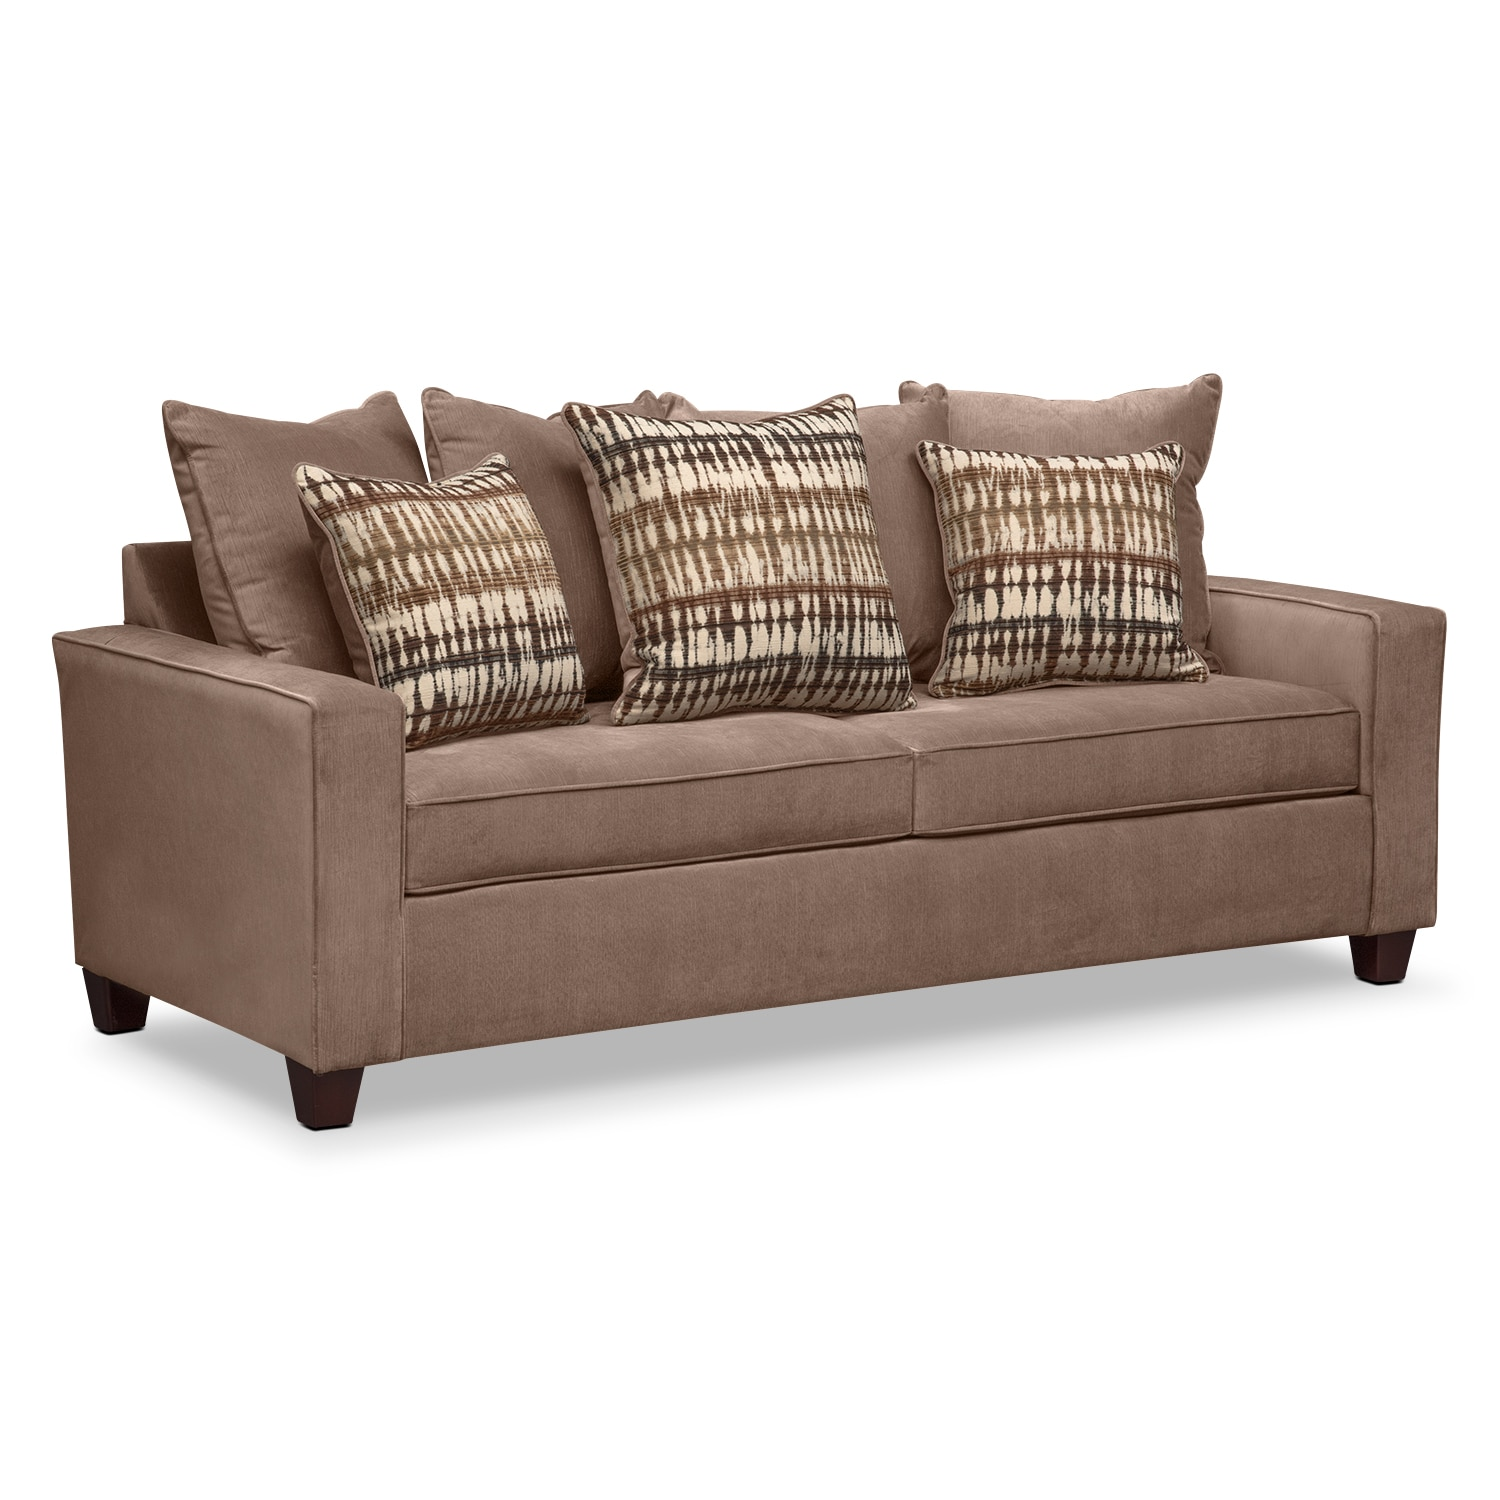 bryden sofa chocolate value city furniture. Black Bedroom Furniture Sets. Home Design Ideas